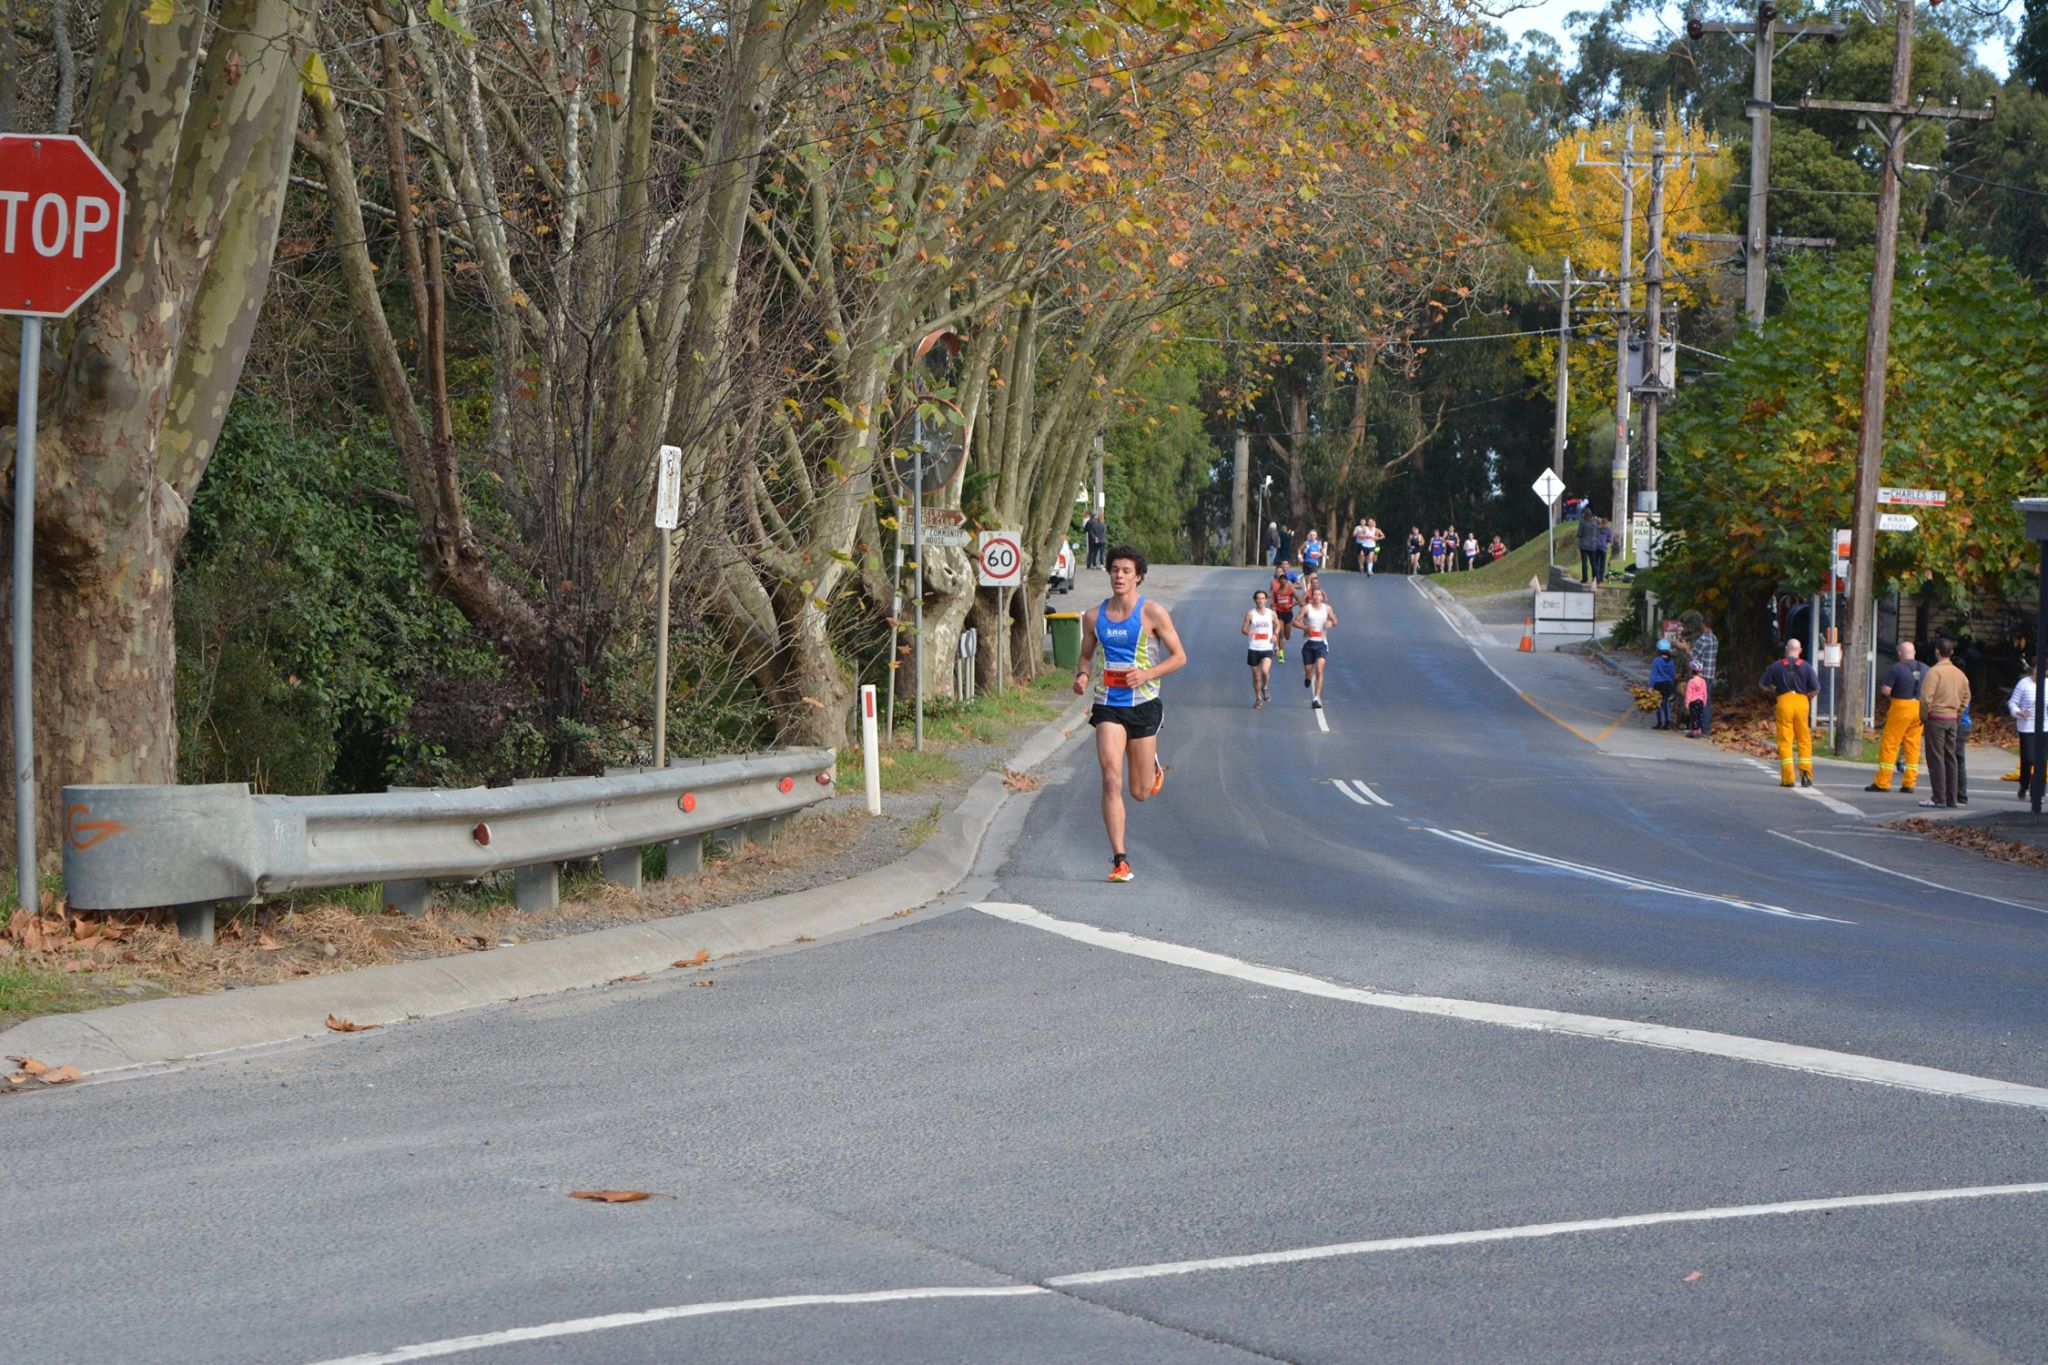 Human Performance Development athlete Mark Richards in the Puffing Billy Great Train Race 2015